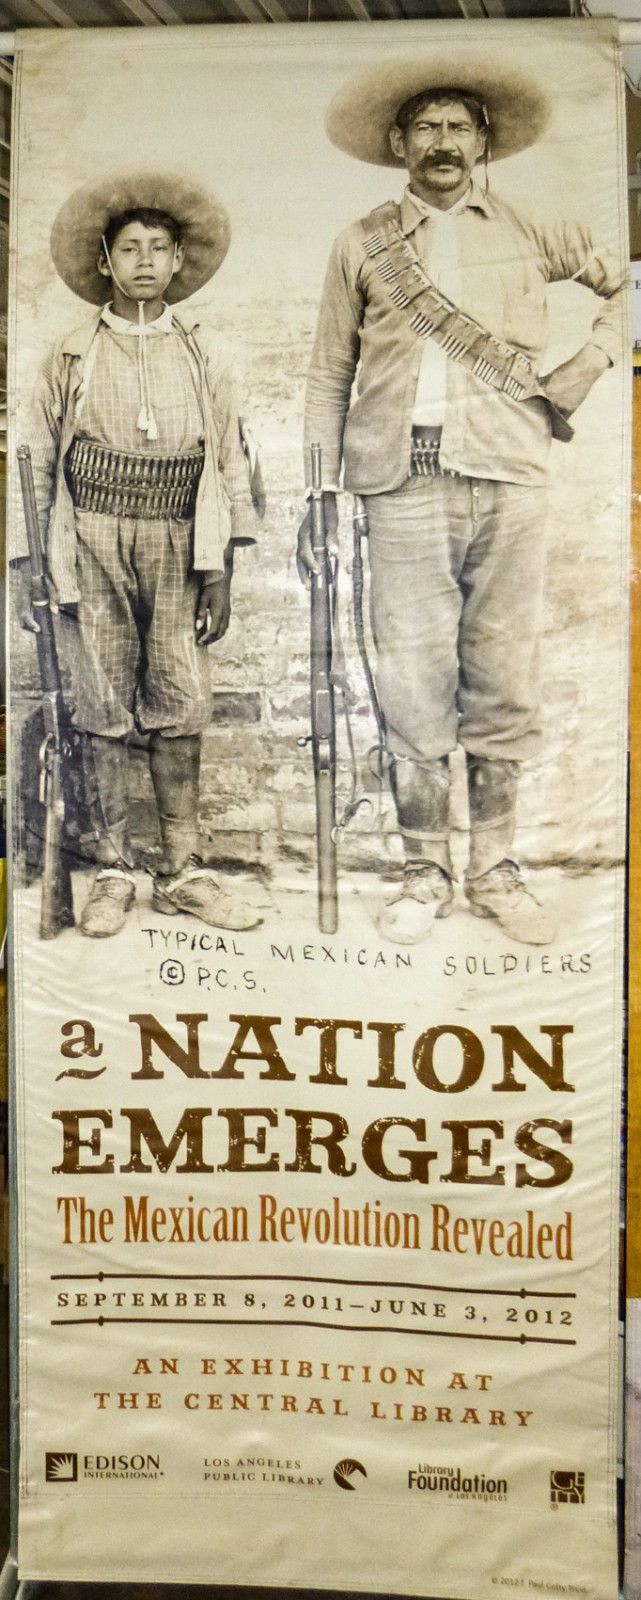 When I was young, all my Mexican friends had grandfathers or uncles who fought in the Mexican Revolution.... Mexican Revolution Child Soldier on 8' Banner La Central Library Getty Exhibit | eBay